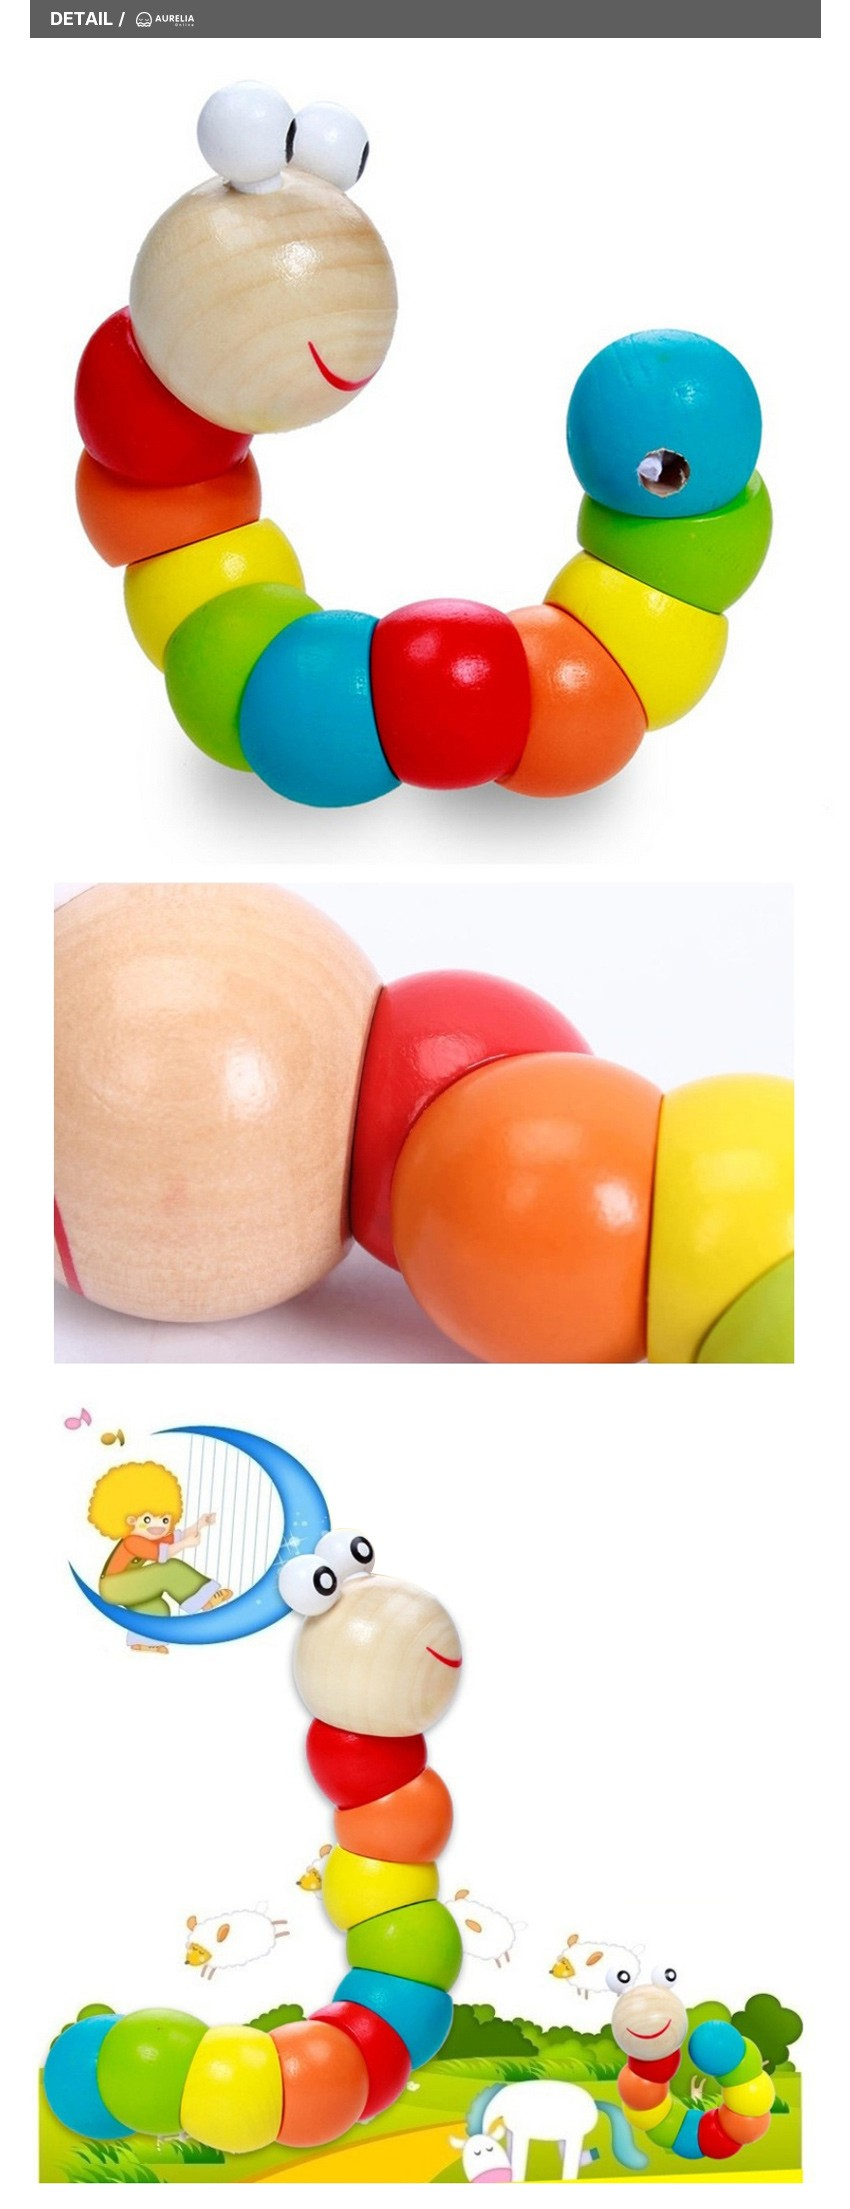 Colorful Insects Puzzles Kids Educational Wooden Toys Baby Children Fingers Flexible Training Science Twisting Worm Toys 3